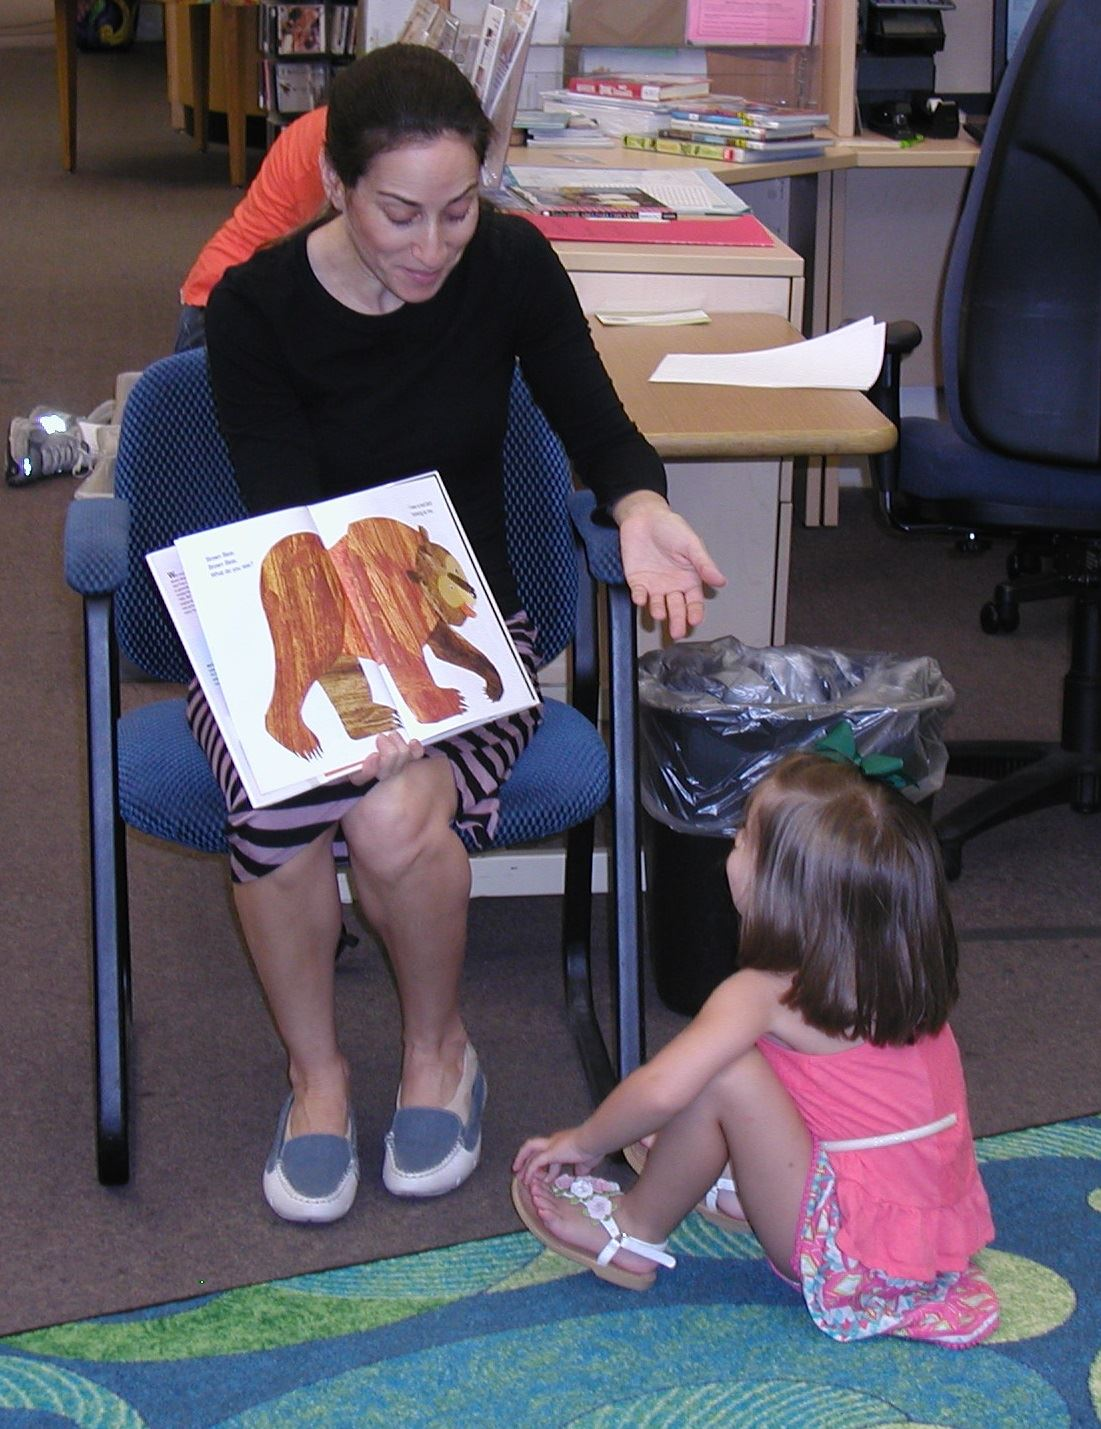 Librarian reading to child.